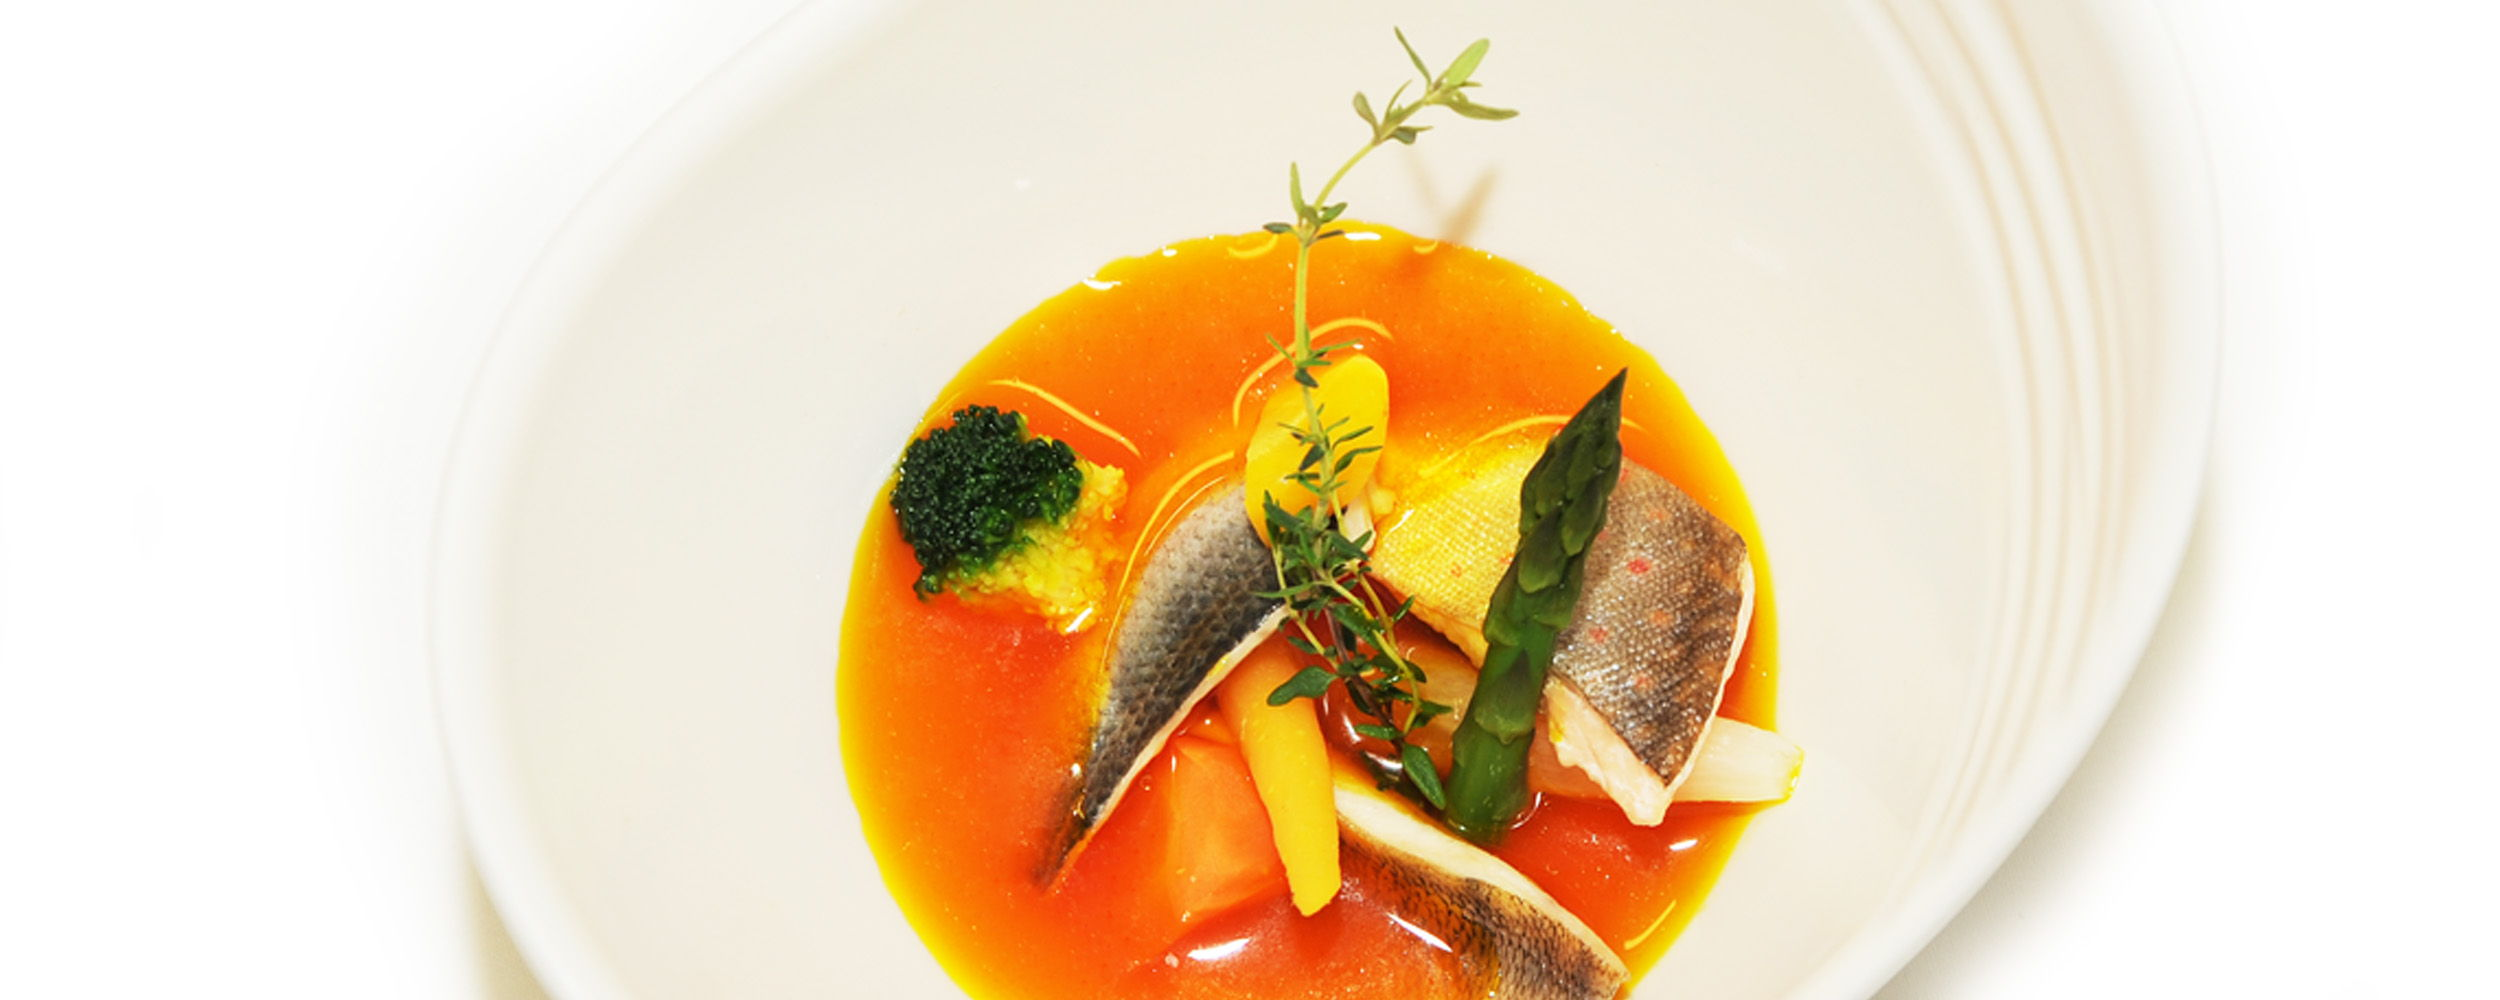 potage_poisson-00.jpg